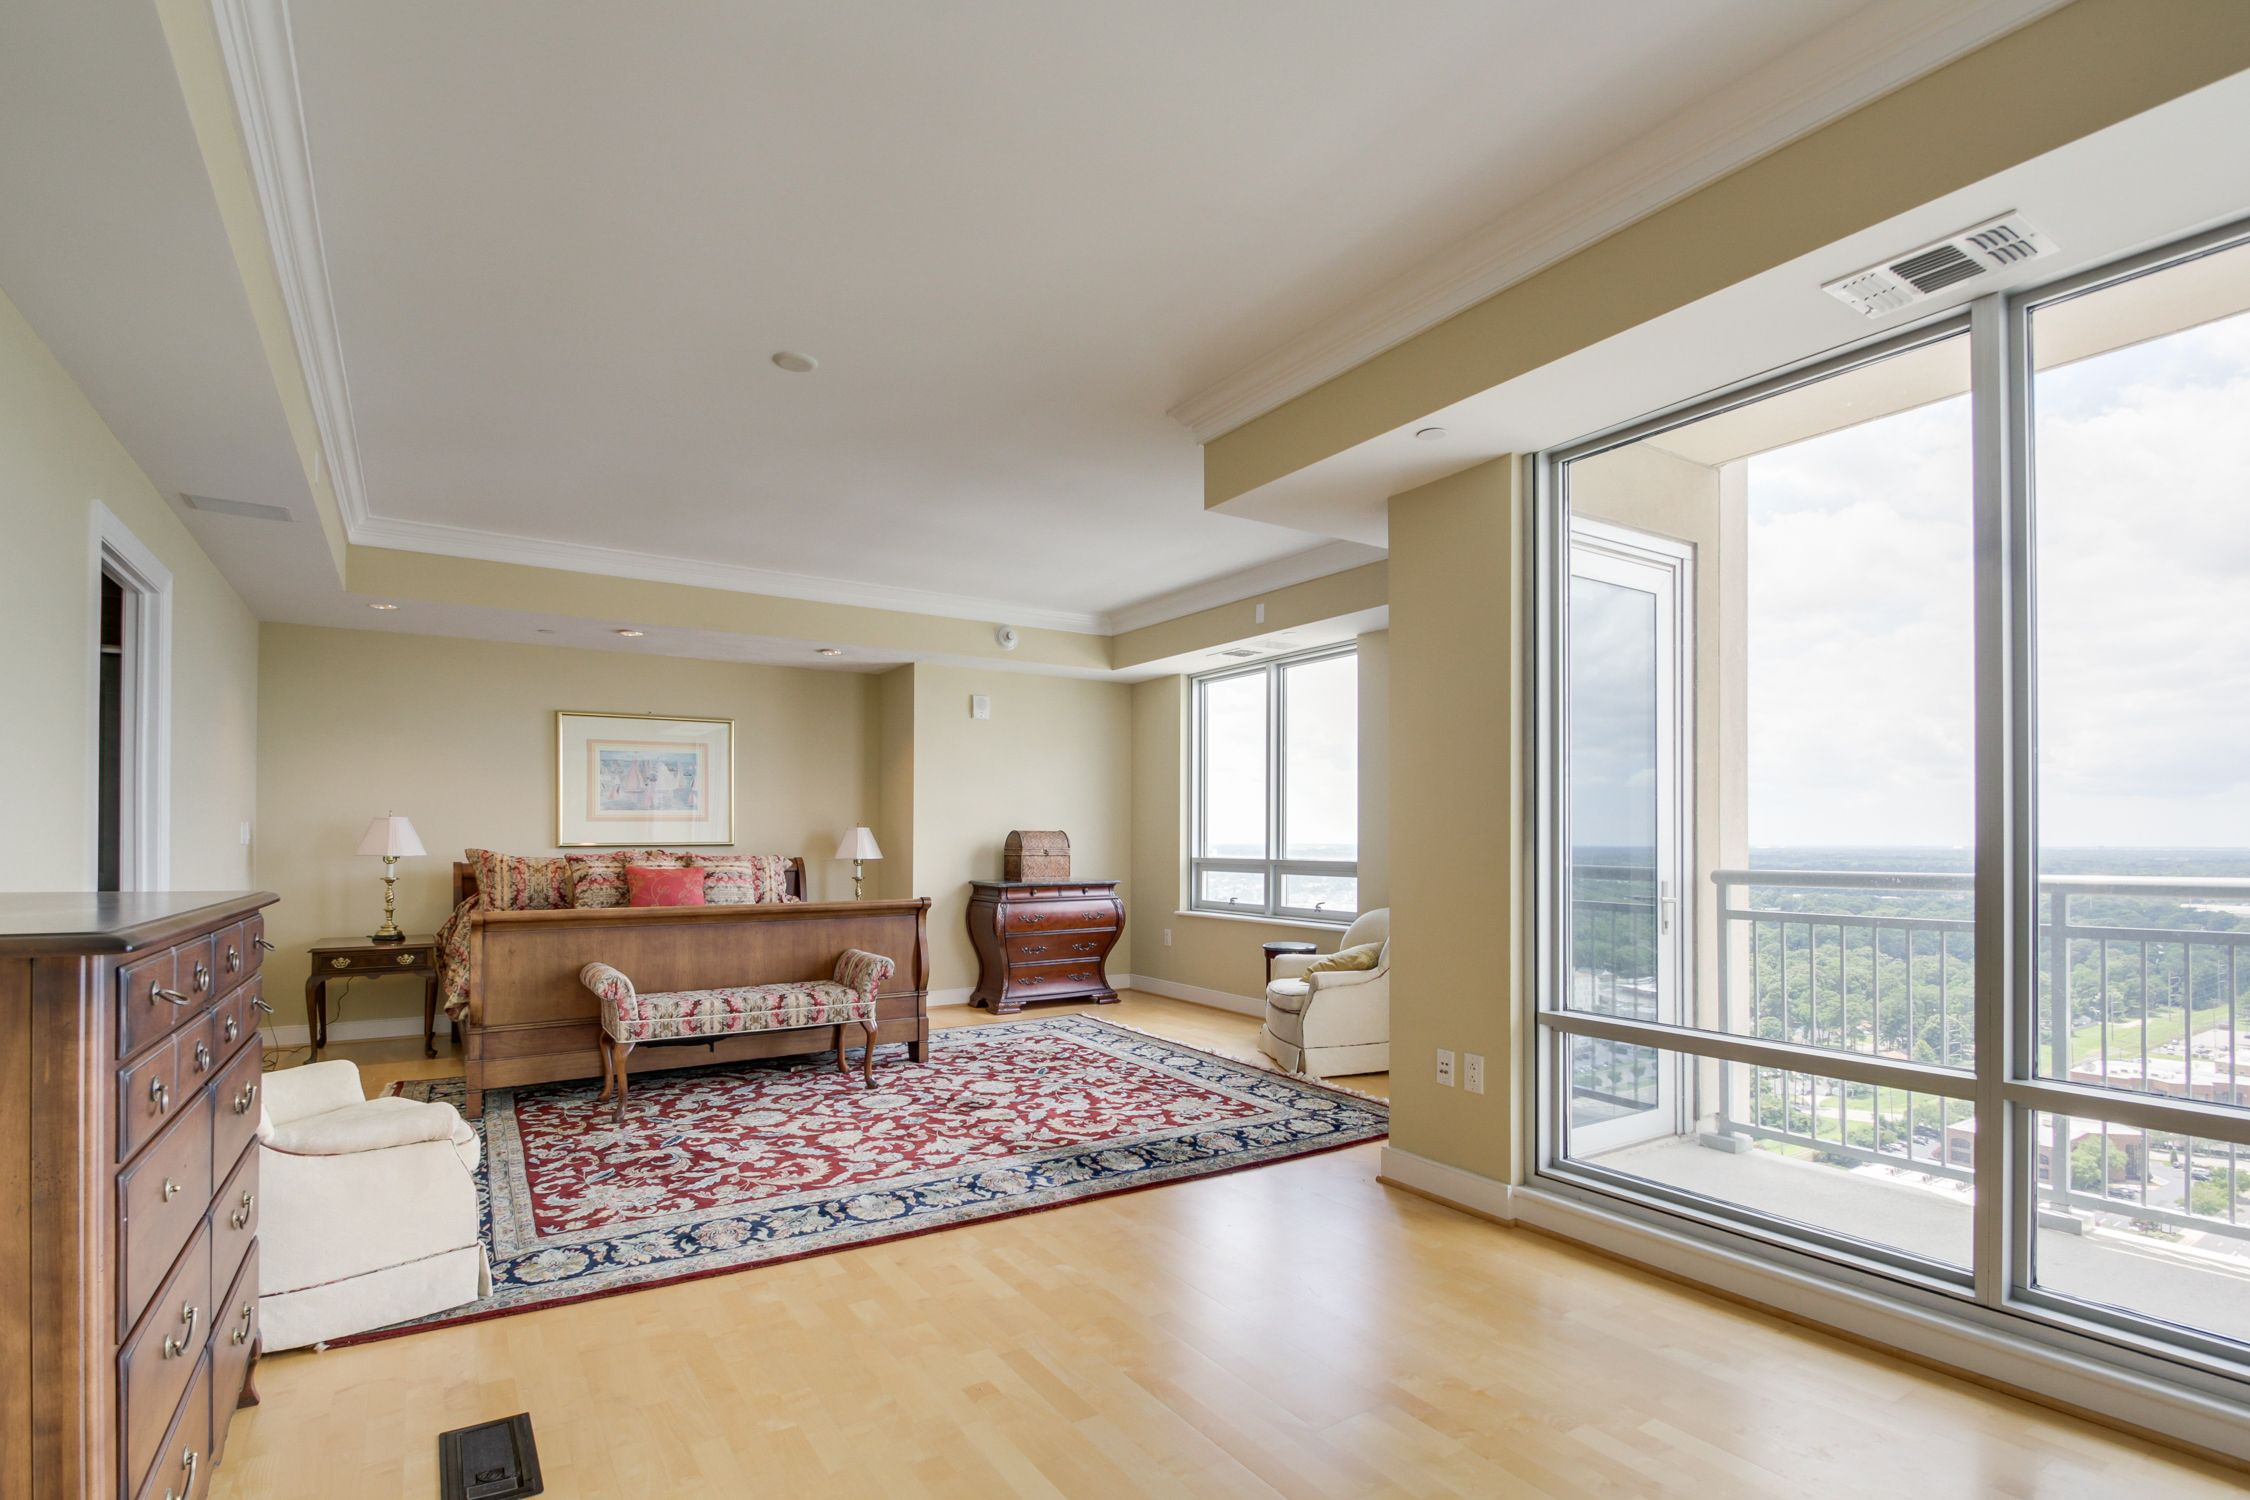 21 Cute Hardwood Floor Refinishing norfolk Va 2021 free download hardwood floor refinishing norfolk va of gorgeous condo in virginia beach available for rent at the westin with regard to gorgeous condo in virginia beach available for rent at the westin 45